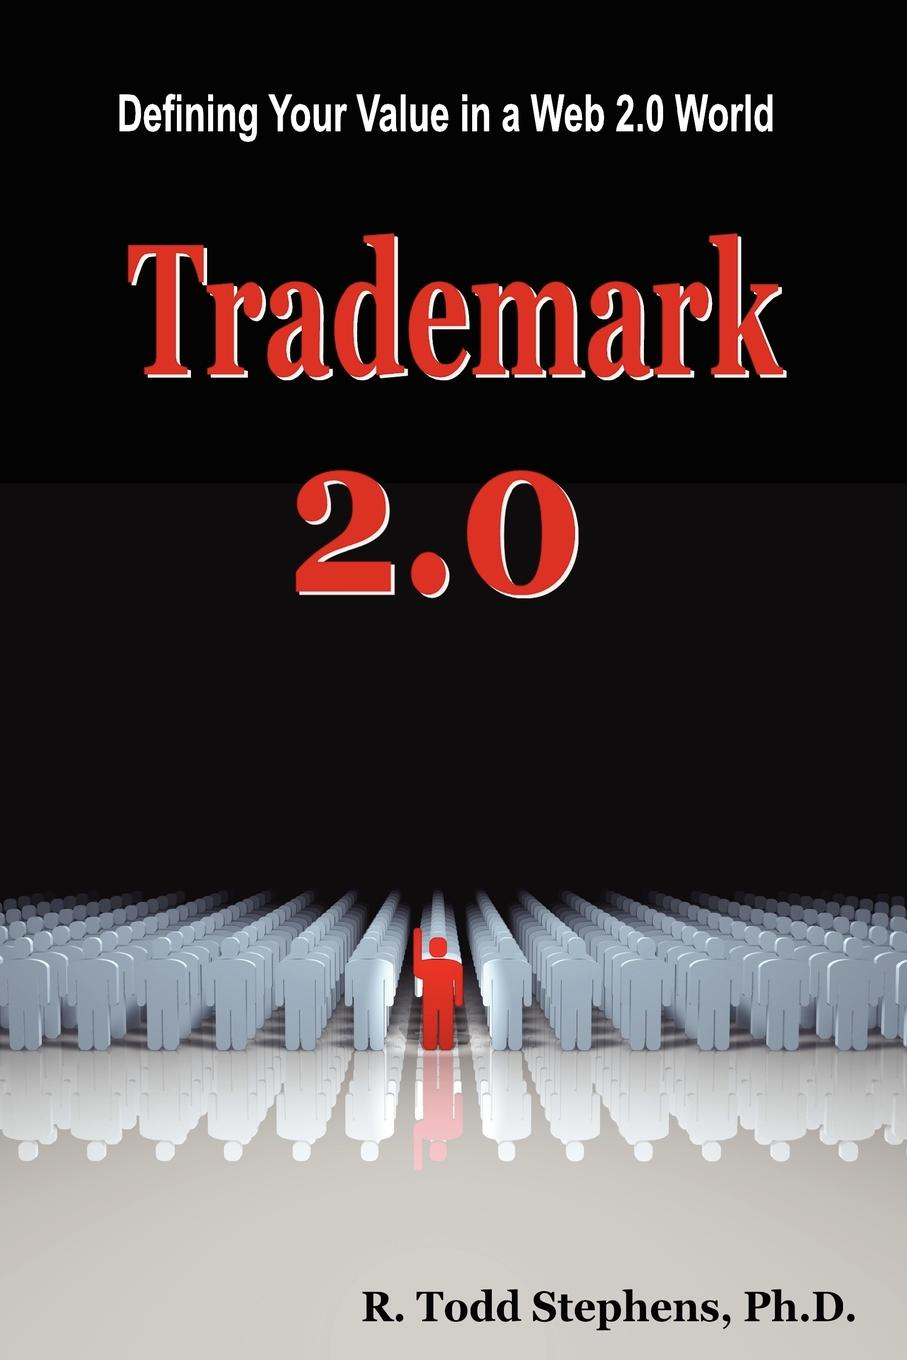 Trademark 2.0. Defining Your Value in the Web 2.0 World This book will discuss several dimensions of building a personal...